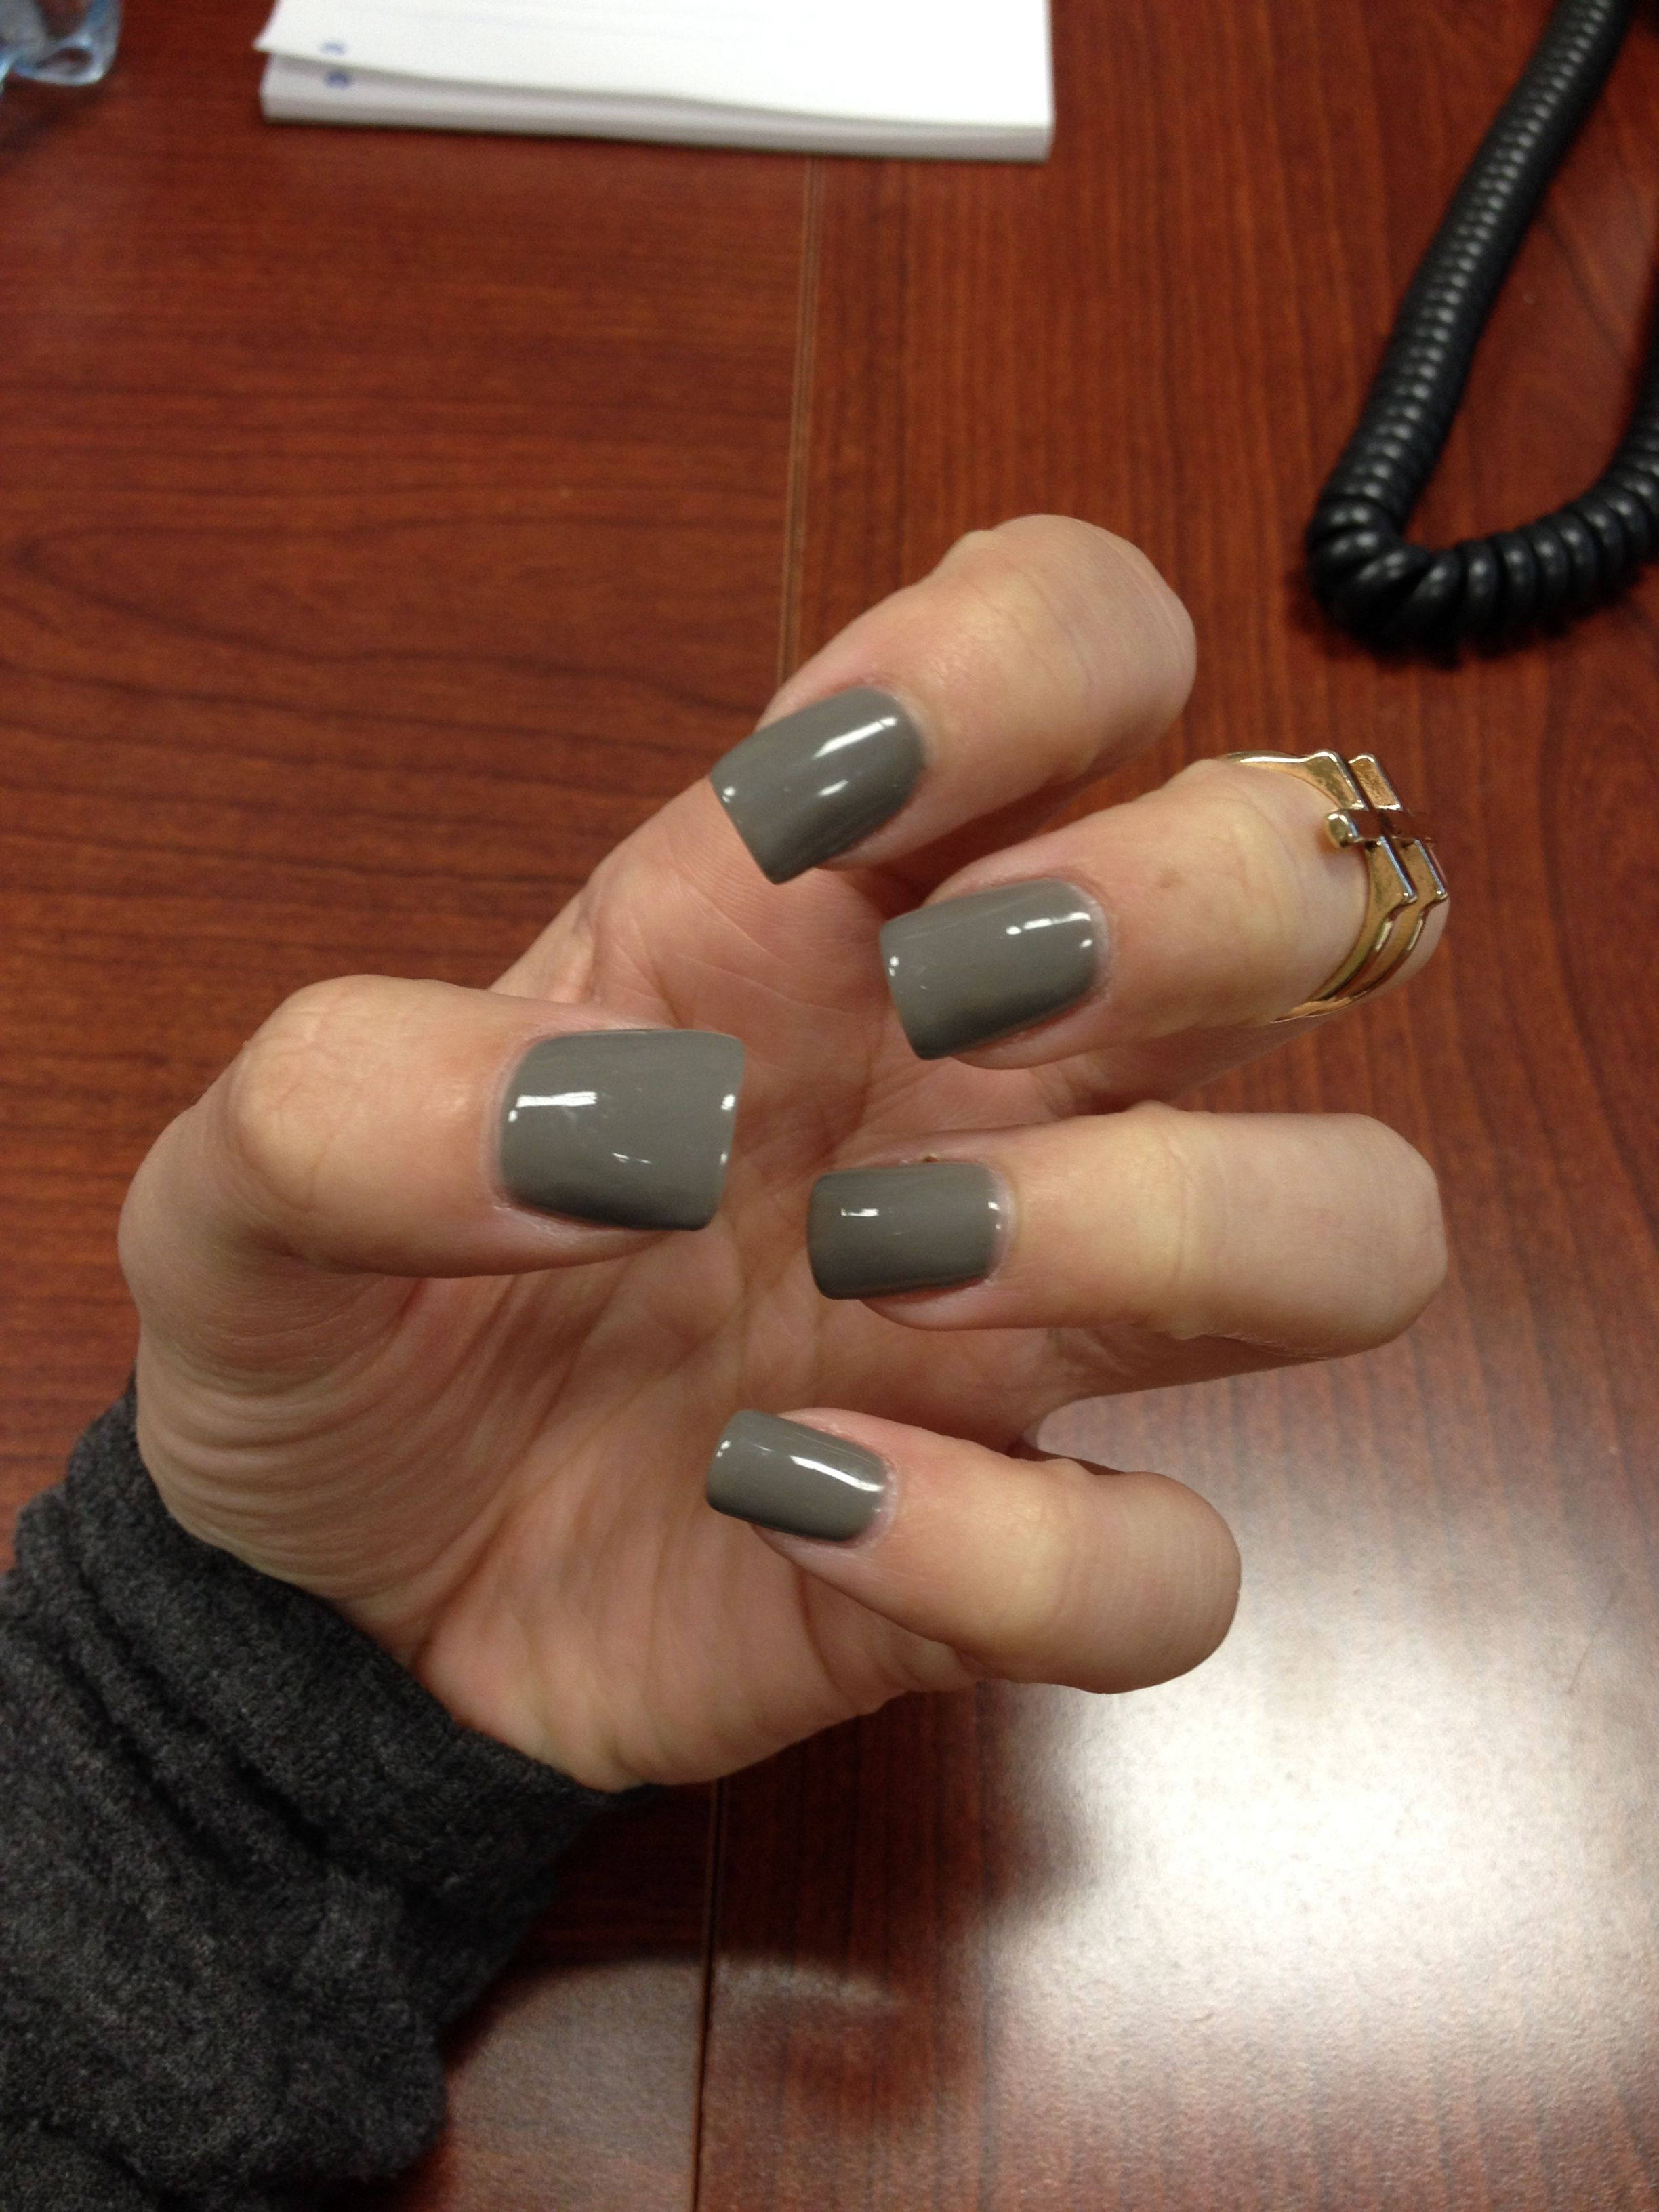 Pin By Kaitlin Freedman On Nails Square Acrylic Nails Simple Nails Grey Acrylic Nails